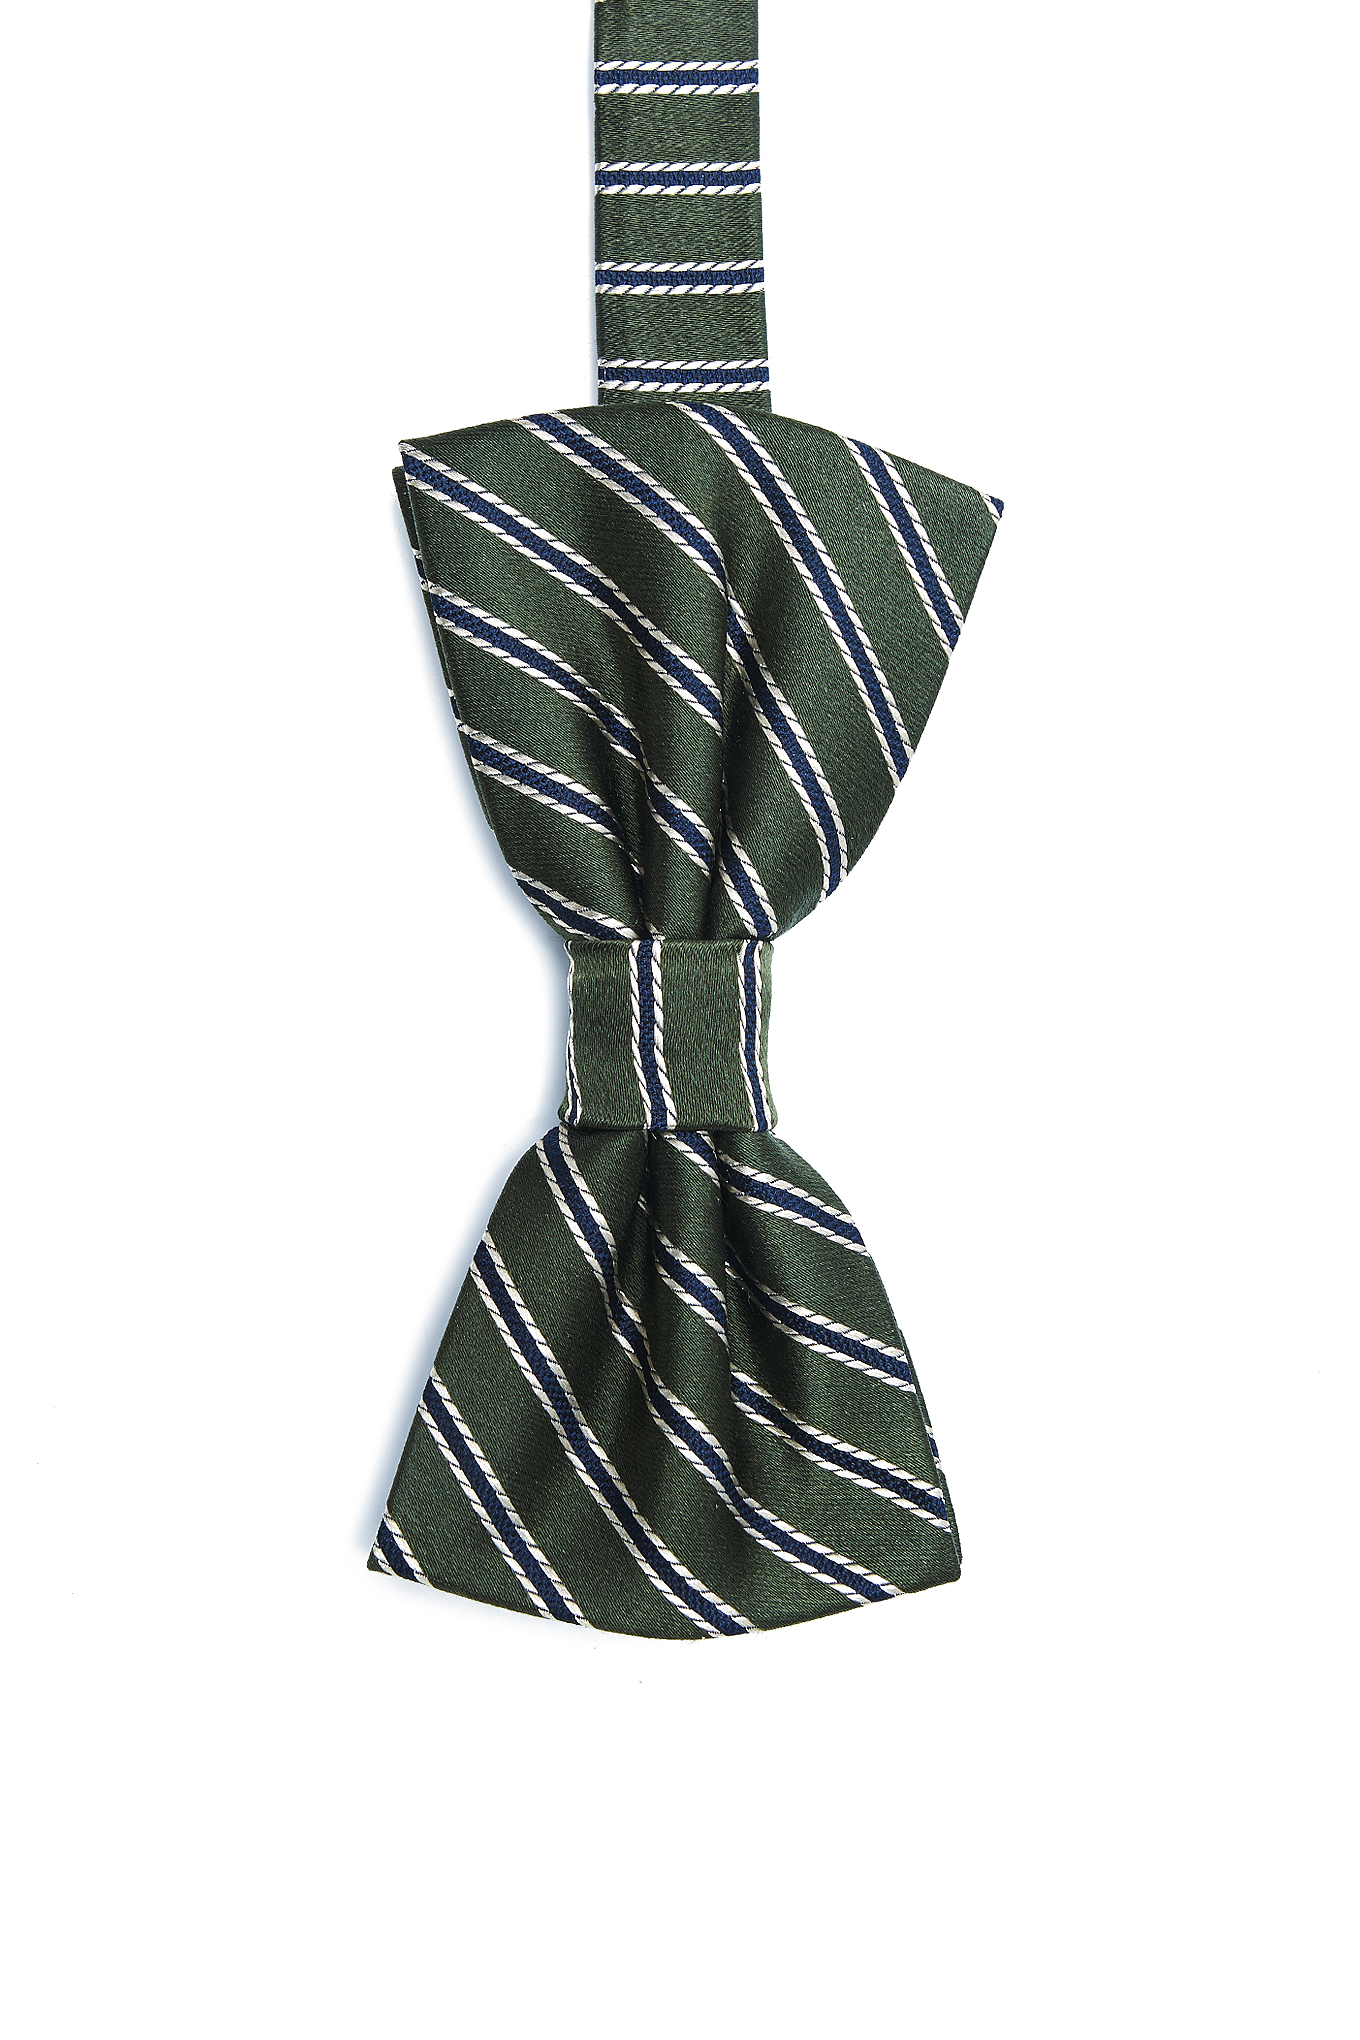 Bow Tie Green Casual Man